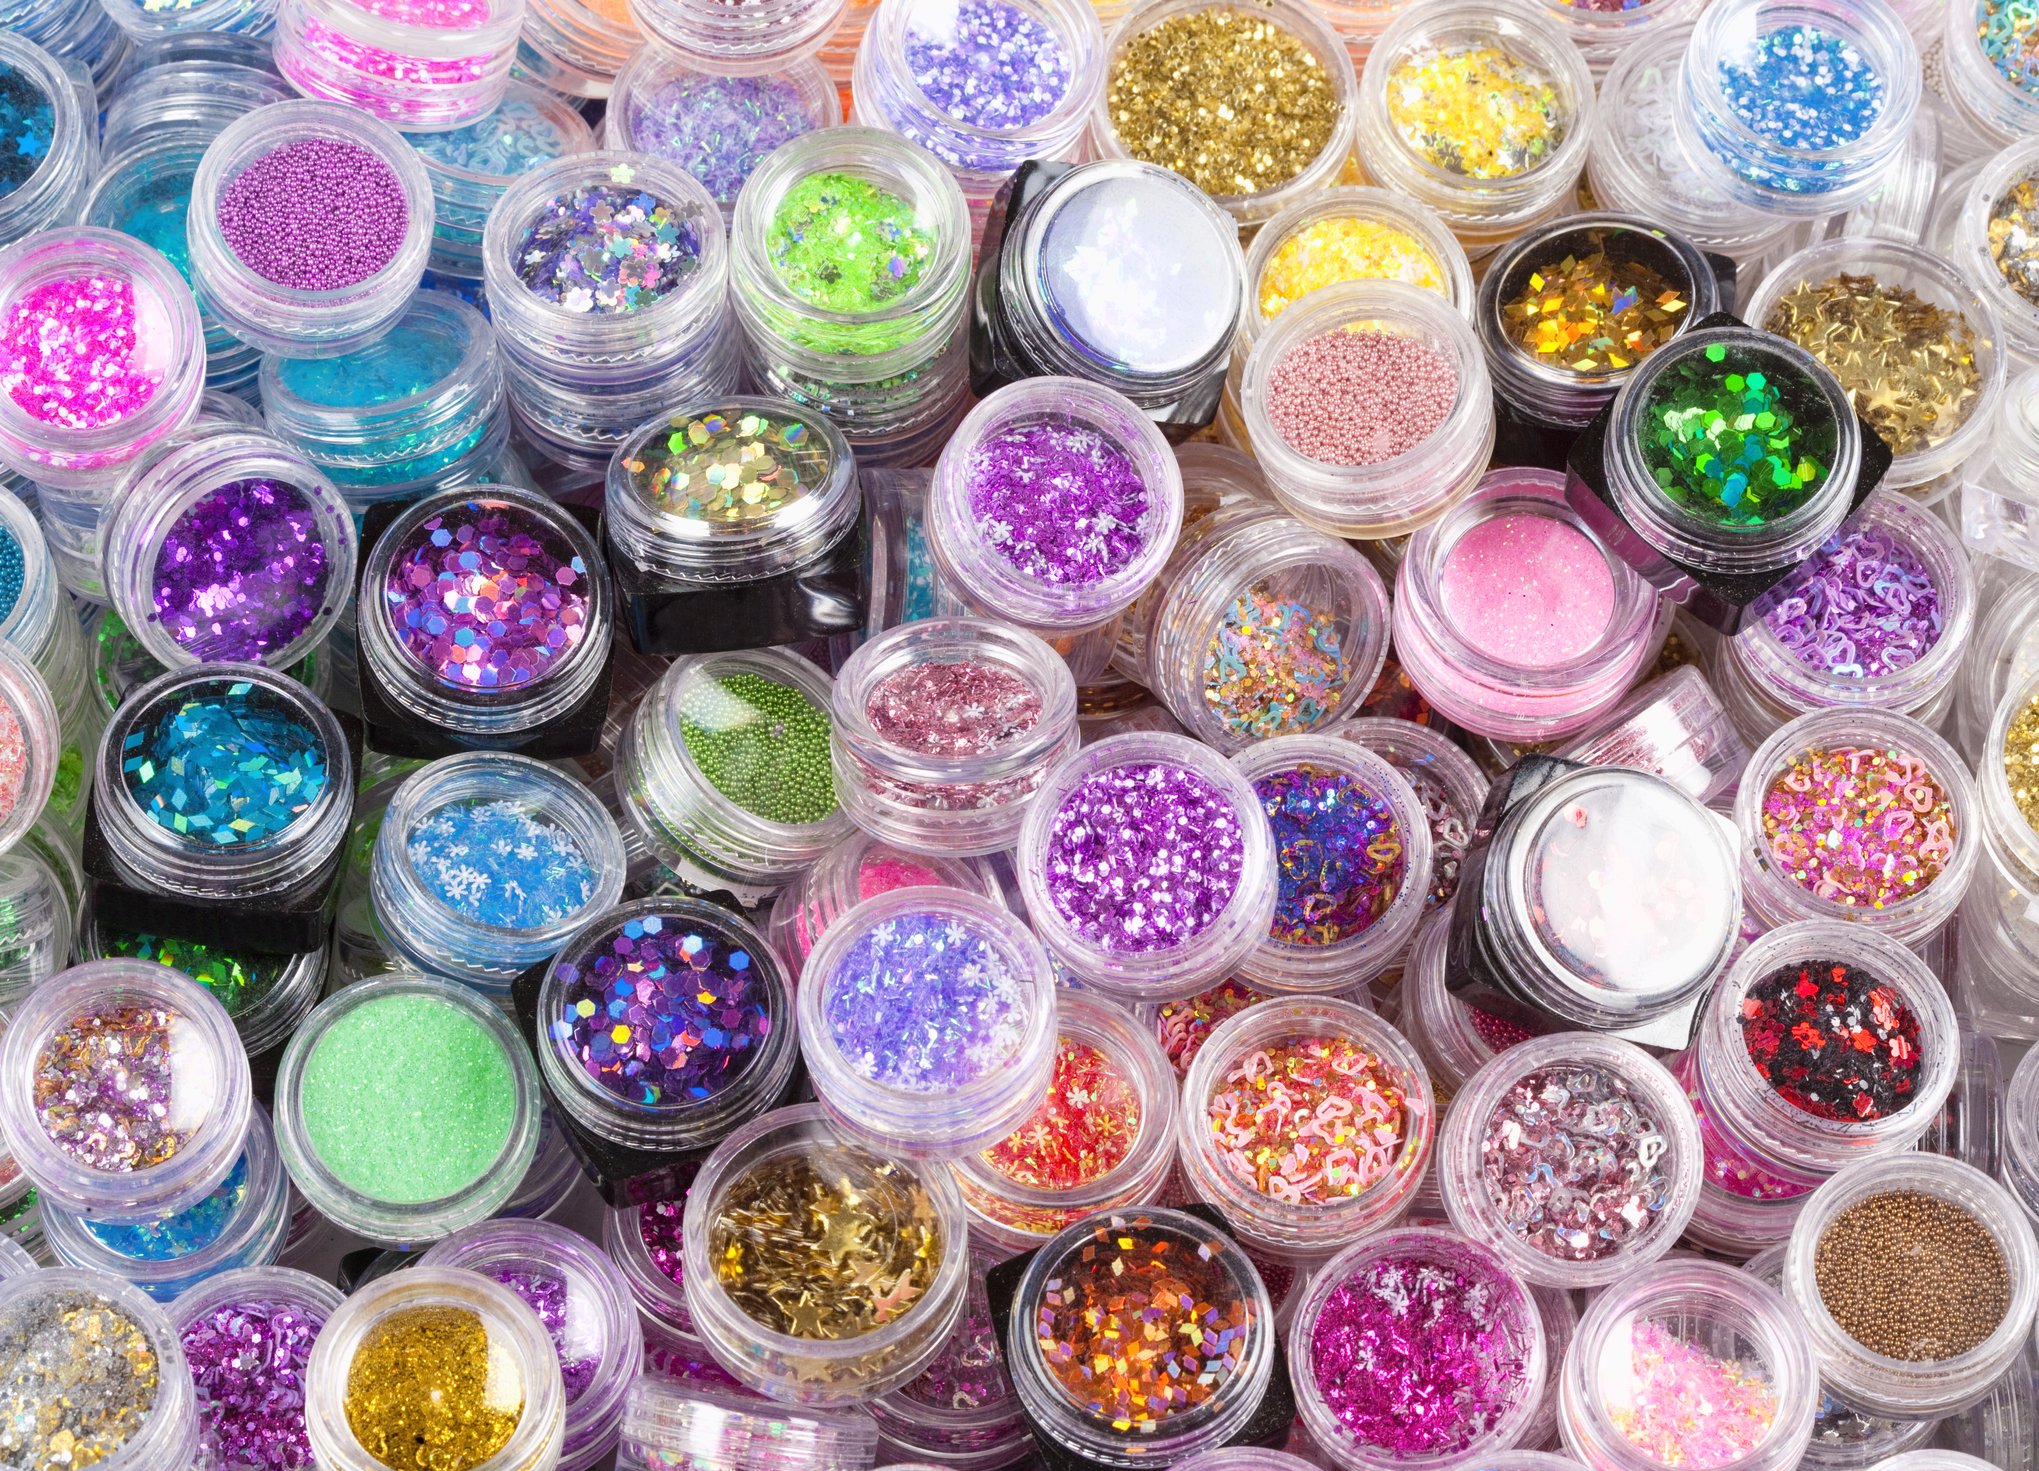 Closeup of Glitter Makeup Colours in a Box.